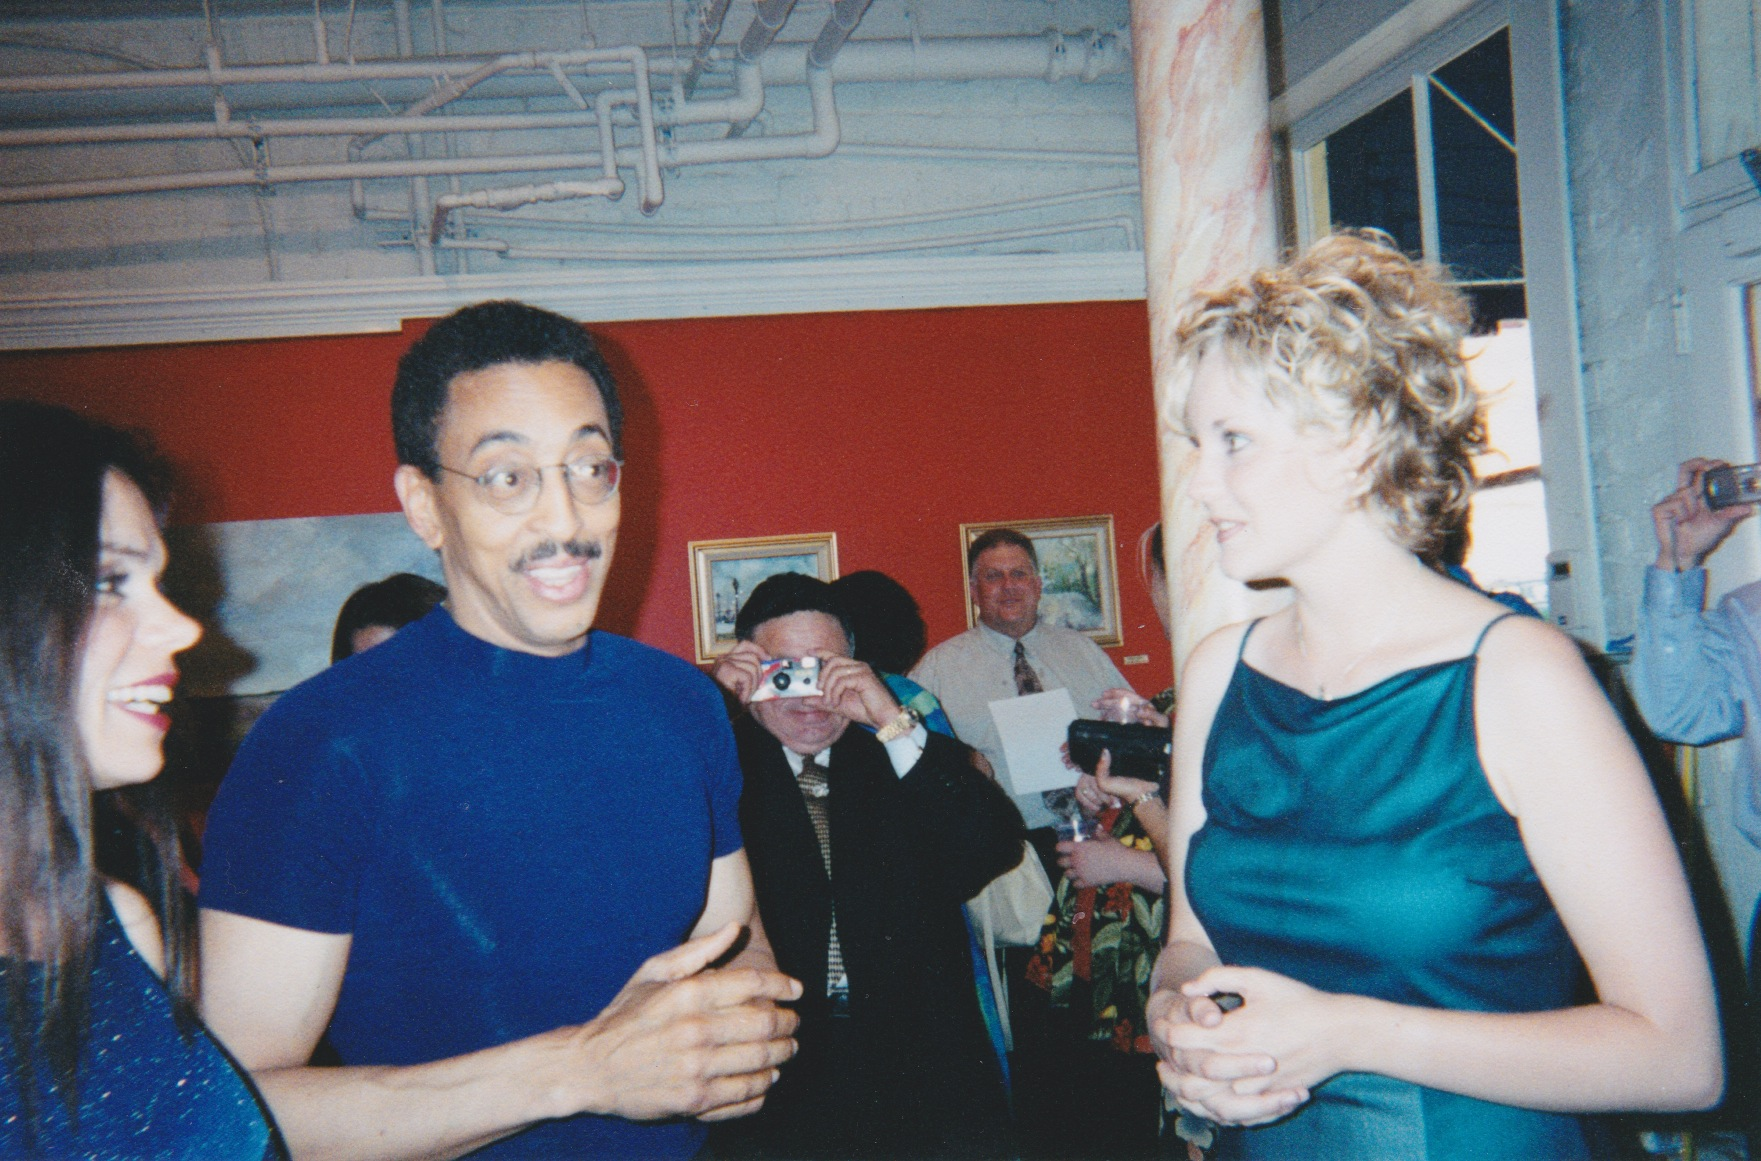 Tiffani with Gregory Hines and at Her Solo Art Exhibition